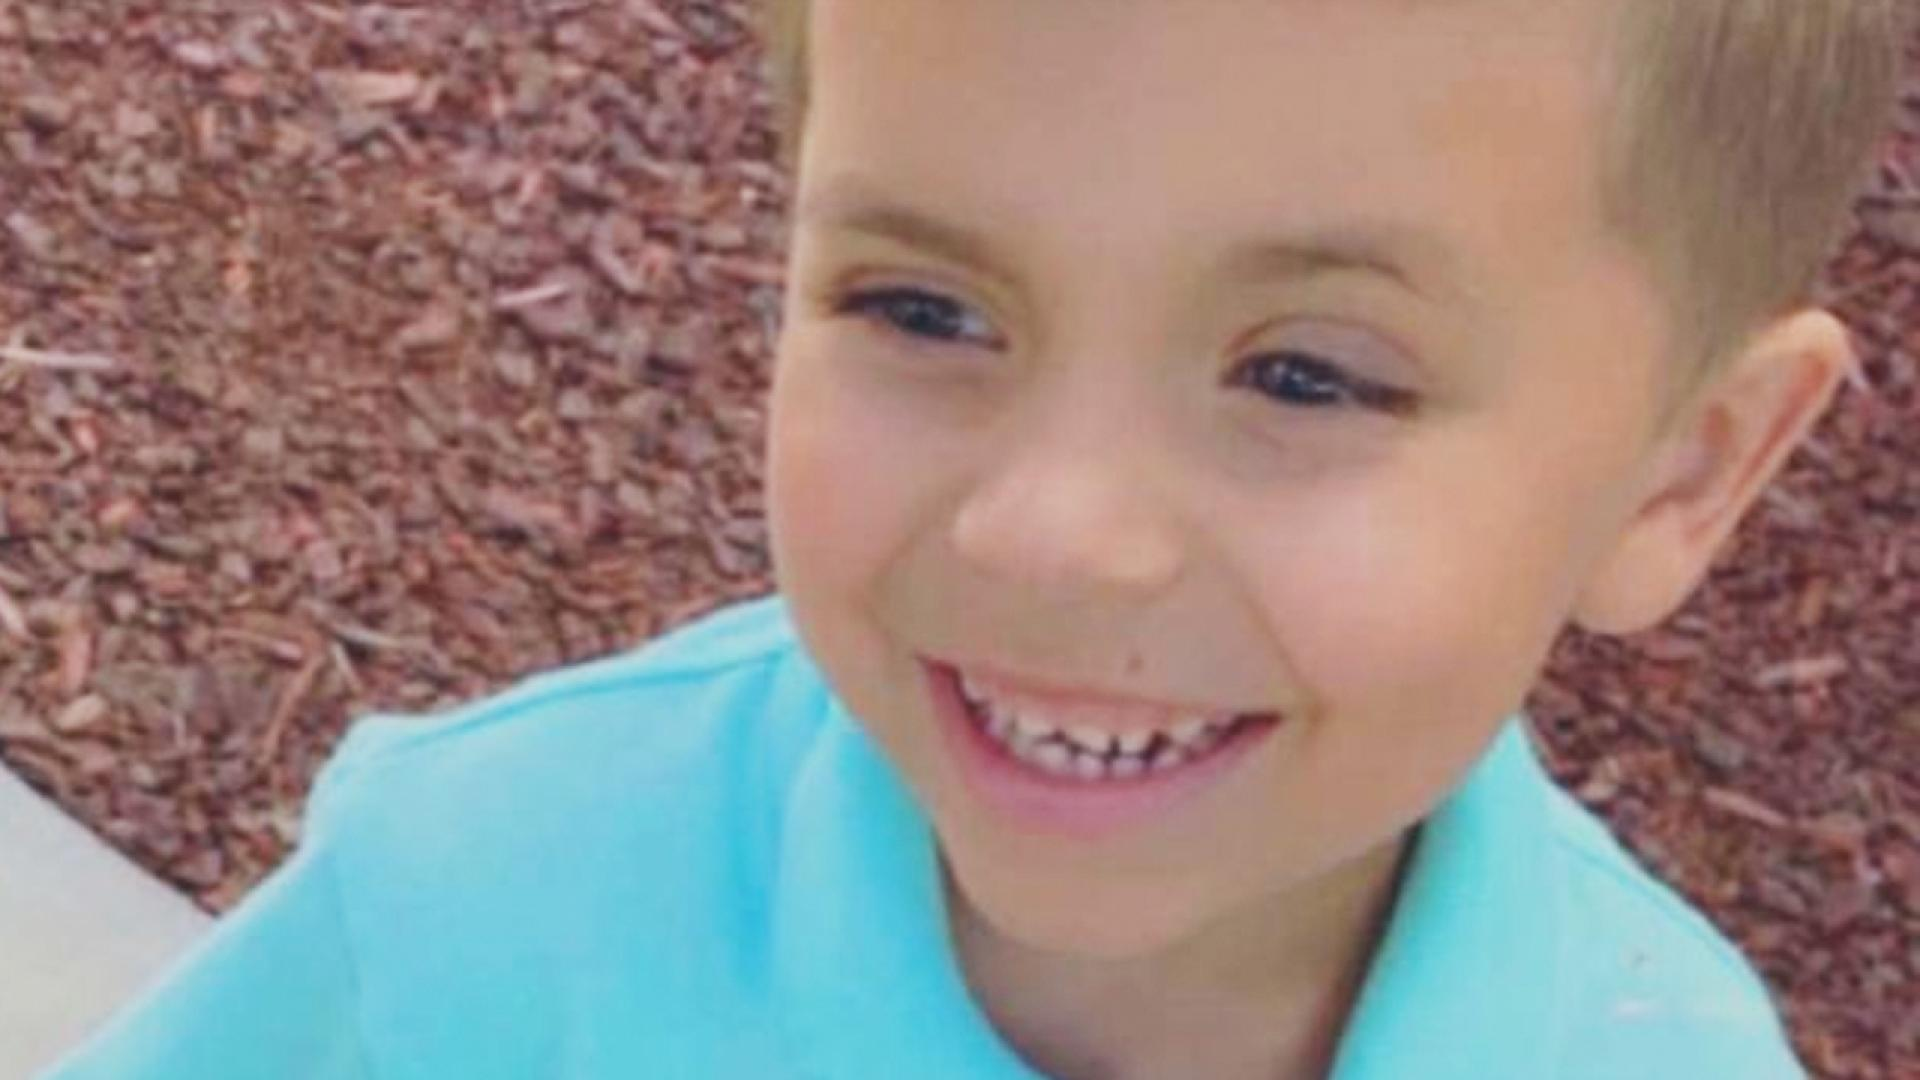 5-year-old Cannon Hinnant was playing outside with his siblings when he was killed.